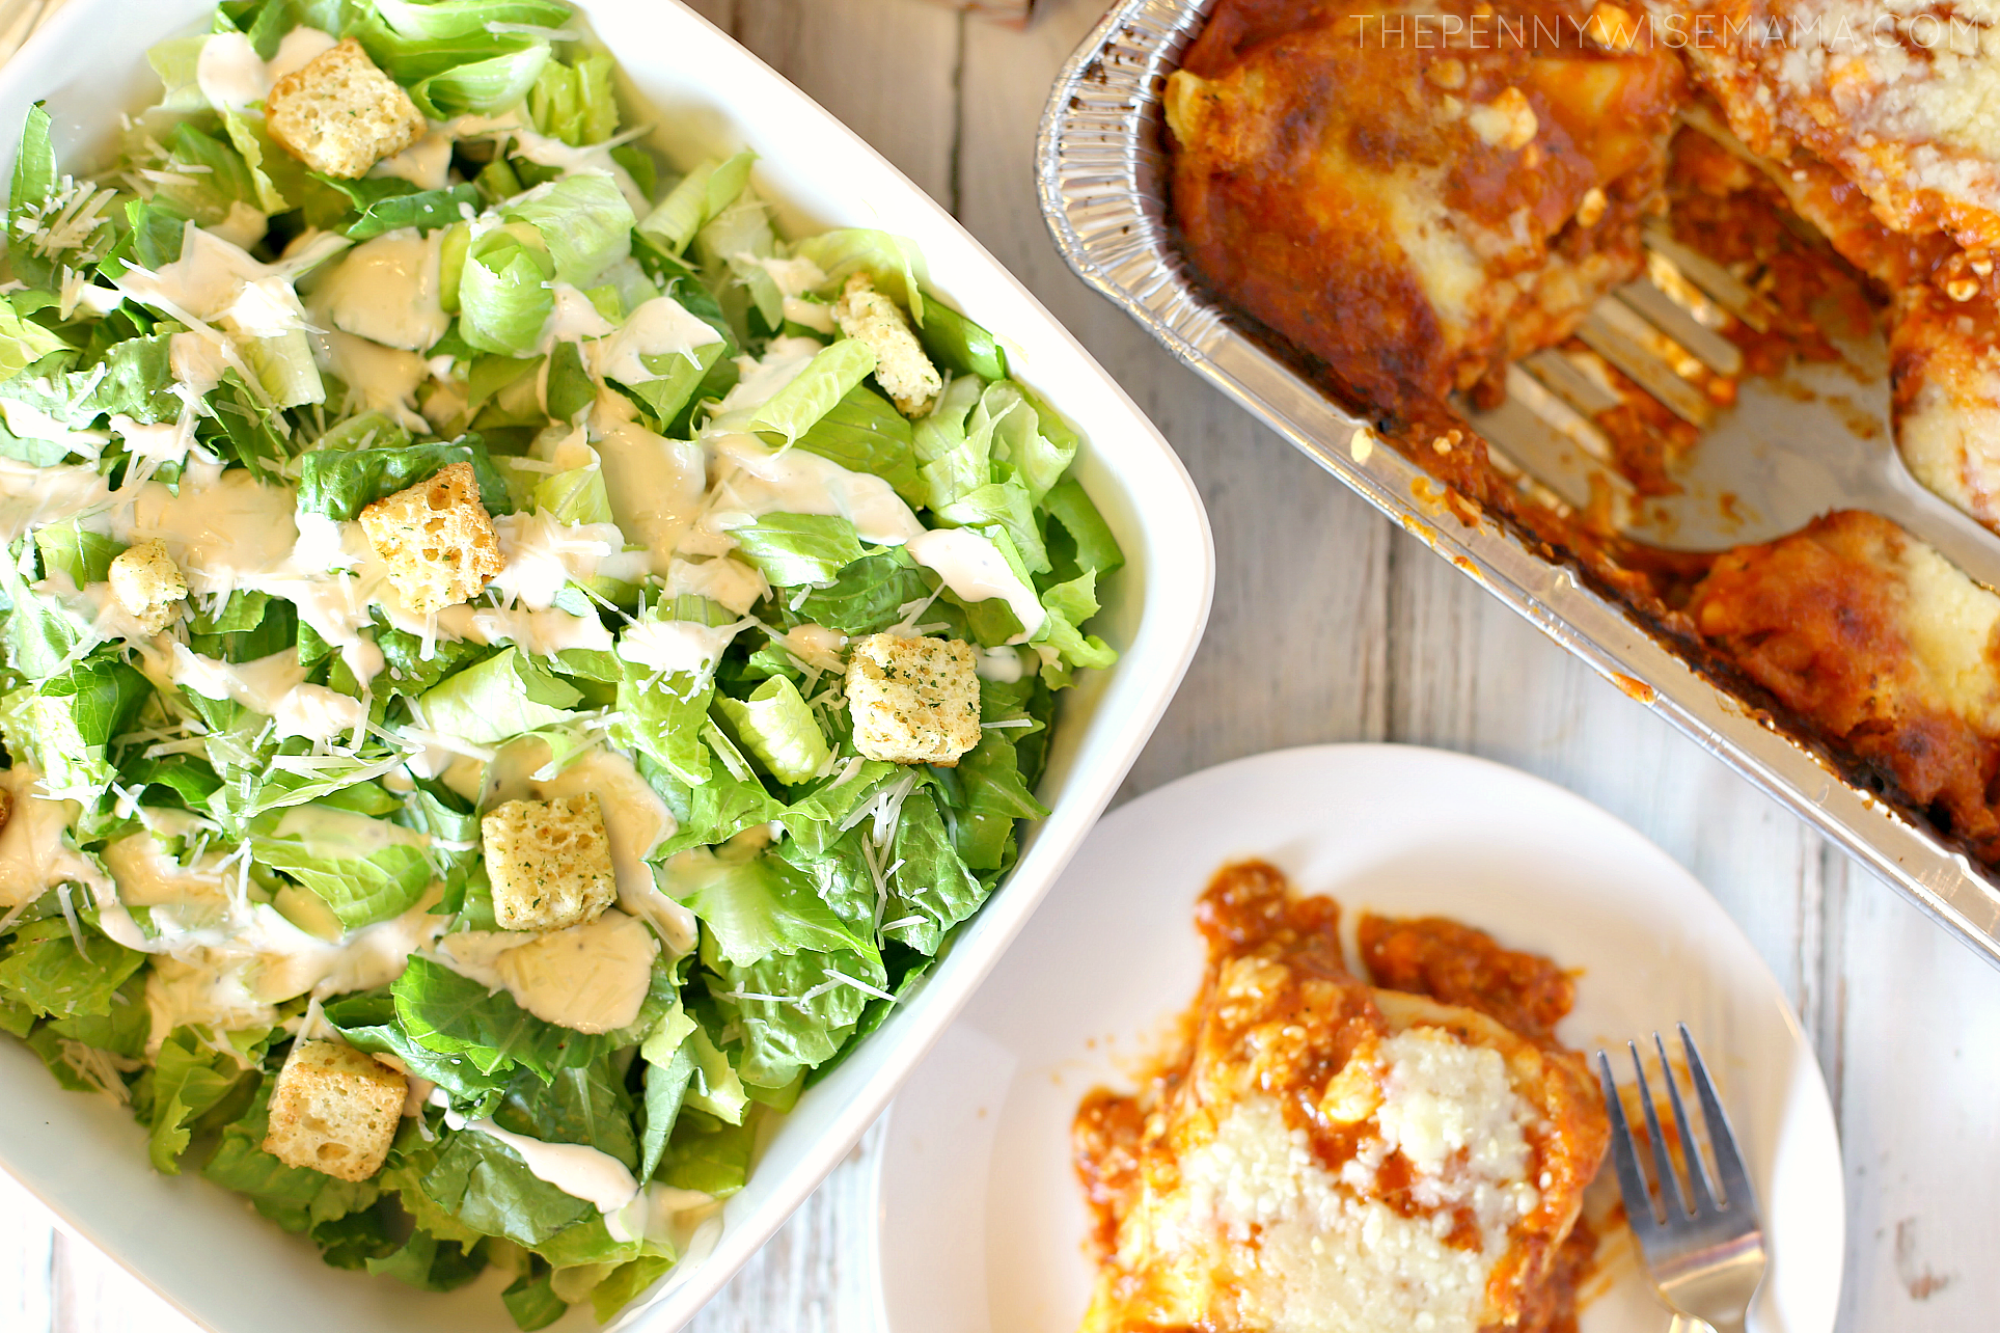 Caesar salad paired with Stouffer's Lasagna with Meat & Sauce